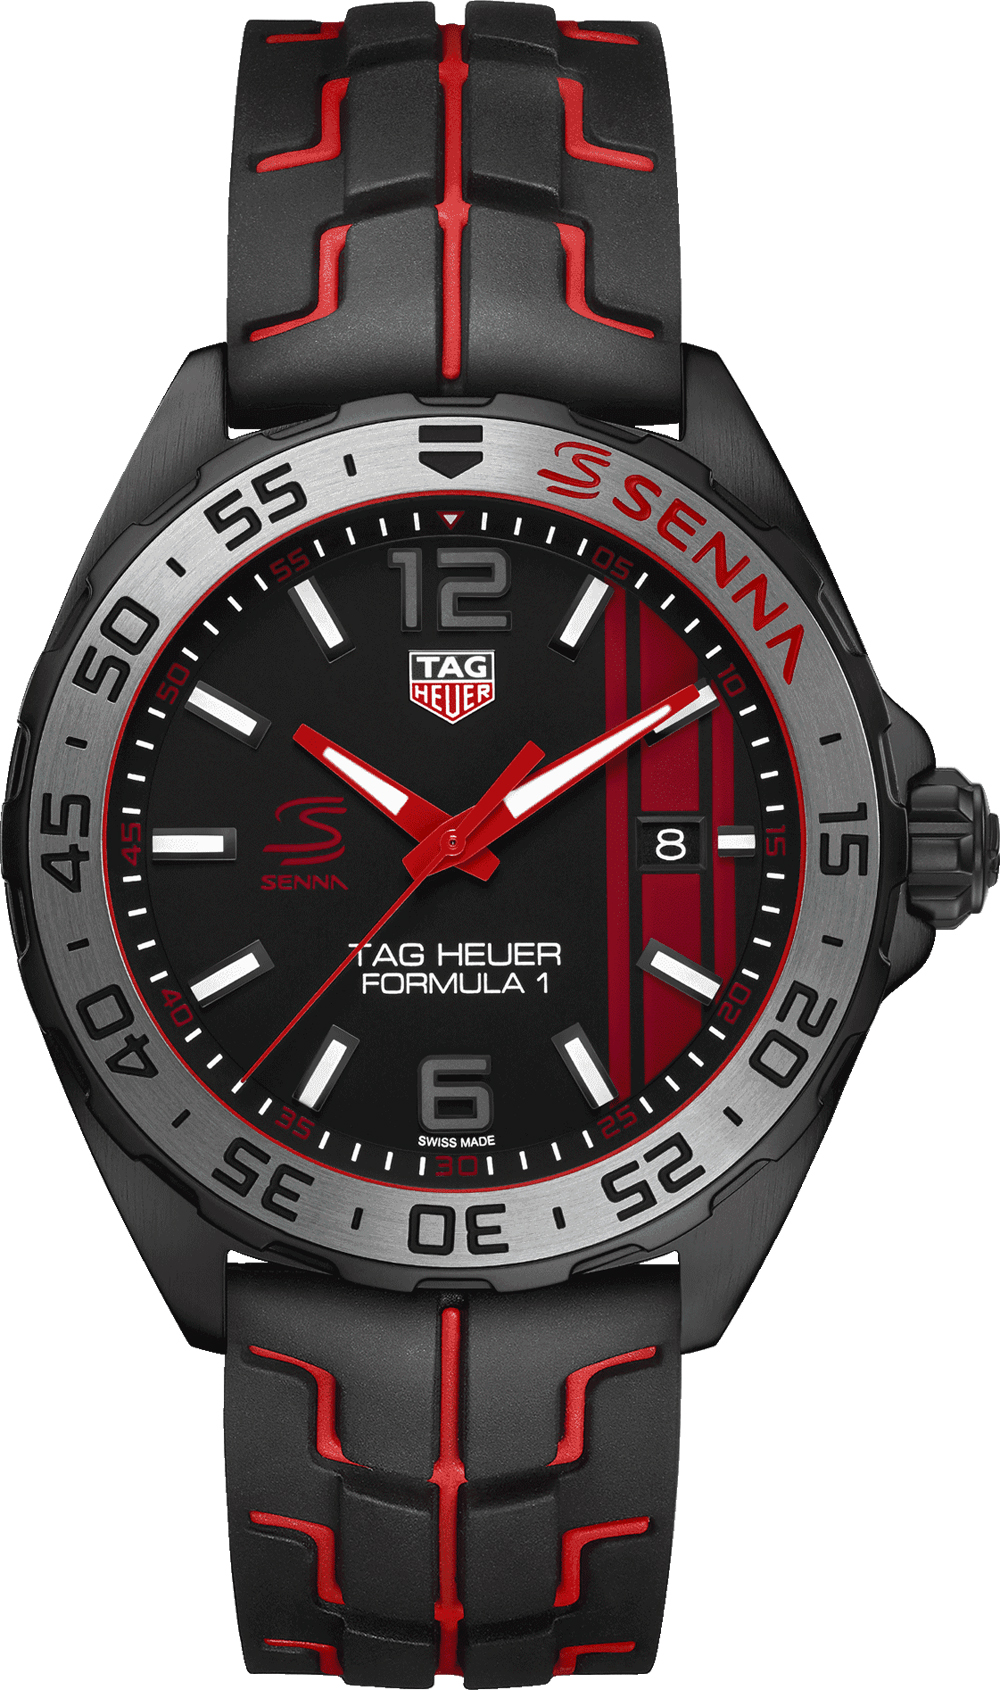 waz1014 ft8027 tag heuer formula 1 senna edition men 39 s watch. Black Bedroom Furniture Sets. Home Design Ideas